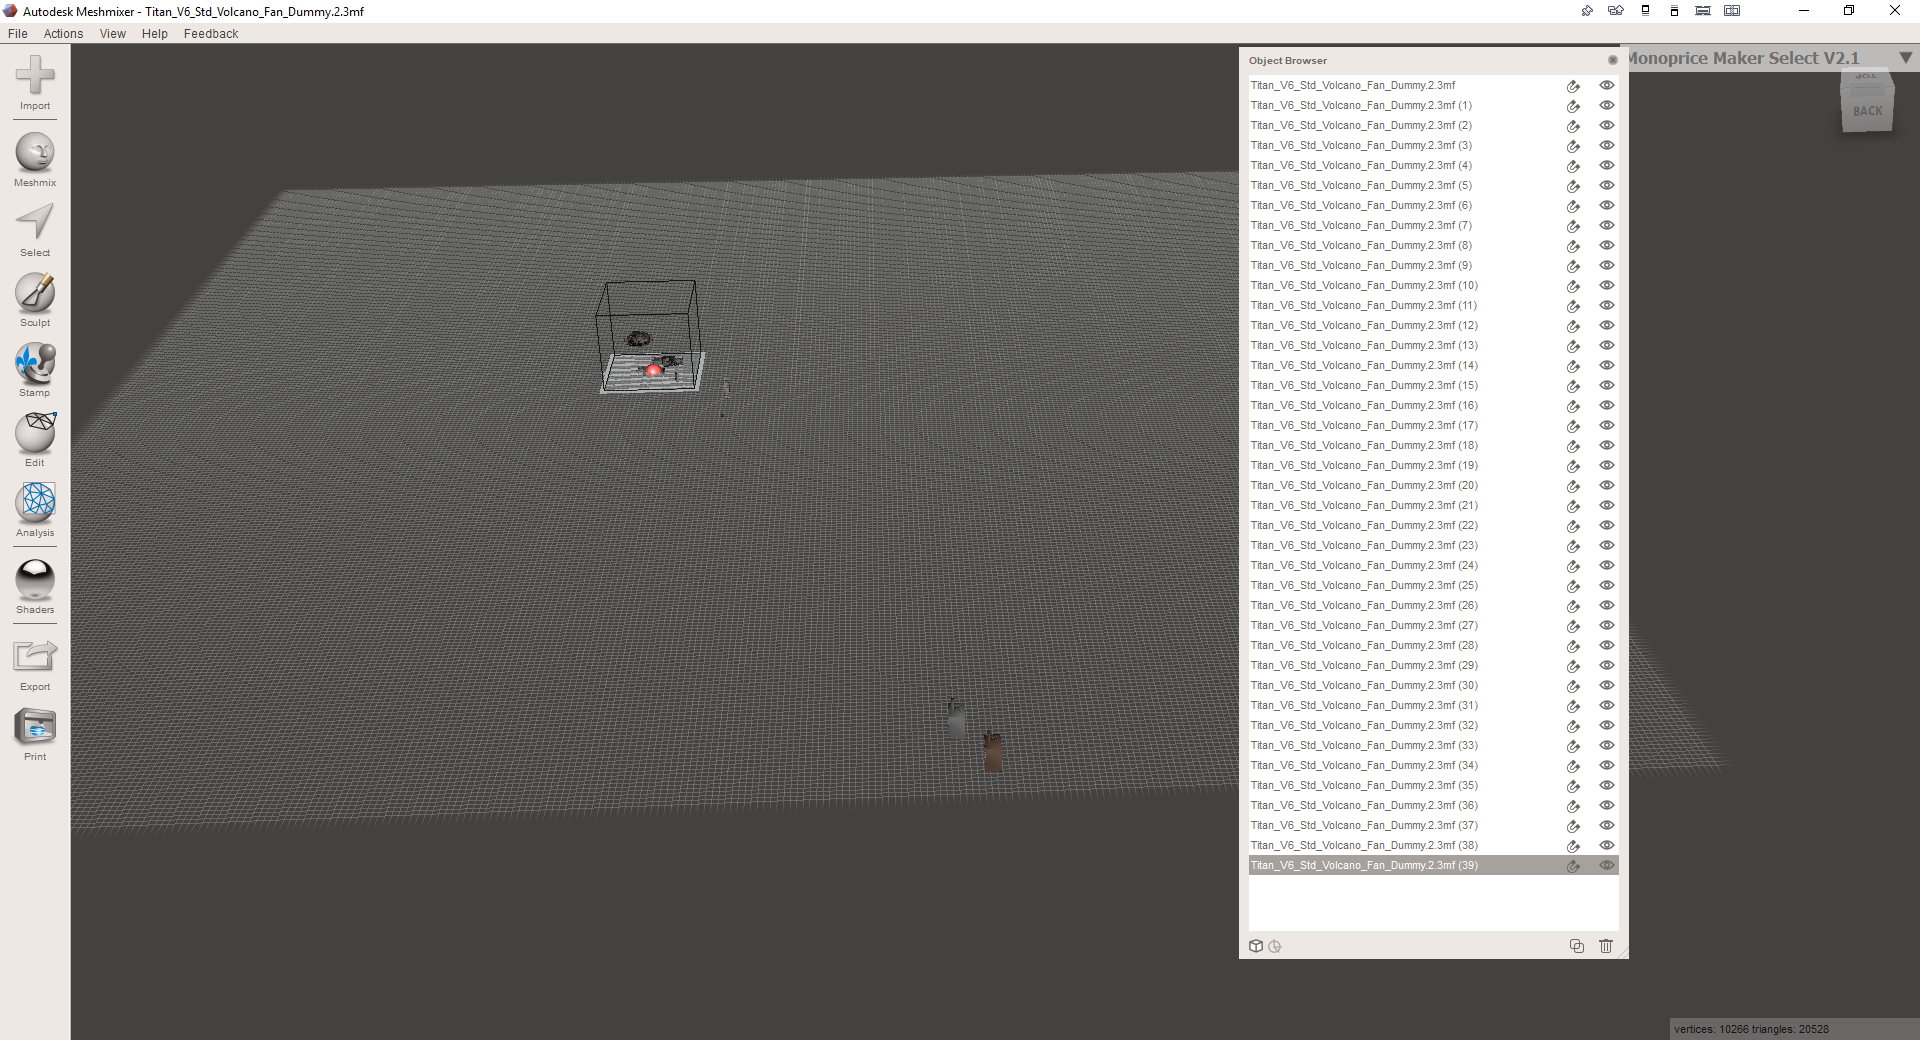 When editing models with 3D Builder it introduces corruption causing merge and repair... 663b1245-9ca3-4484-b18d-1a25243a8198?upload=true.png